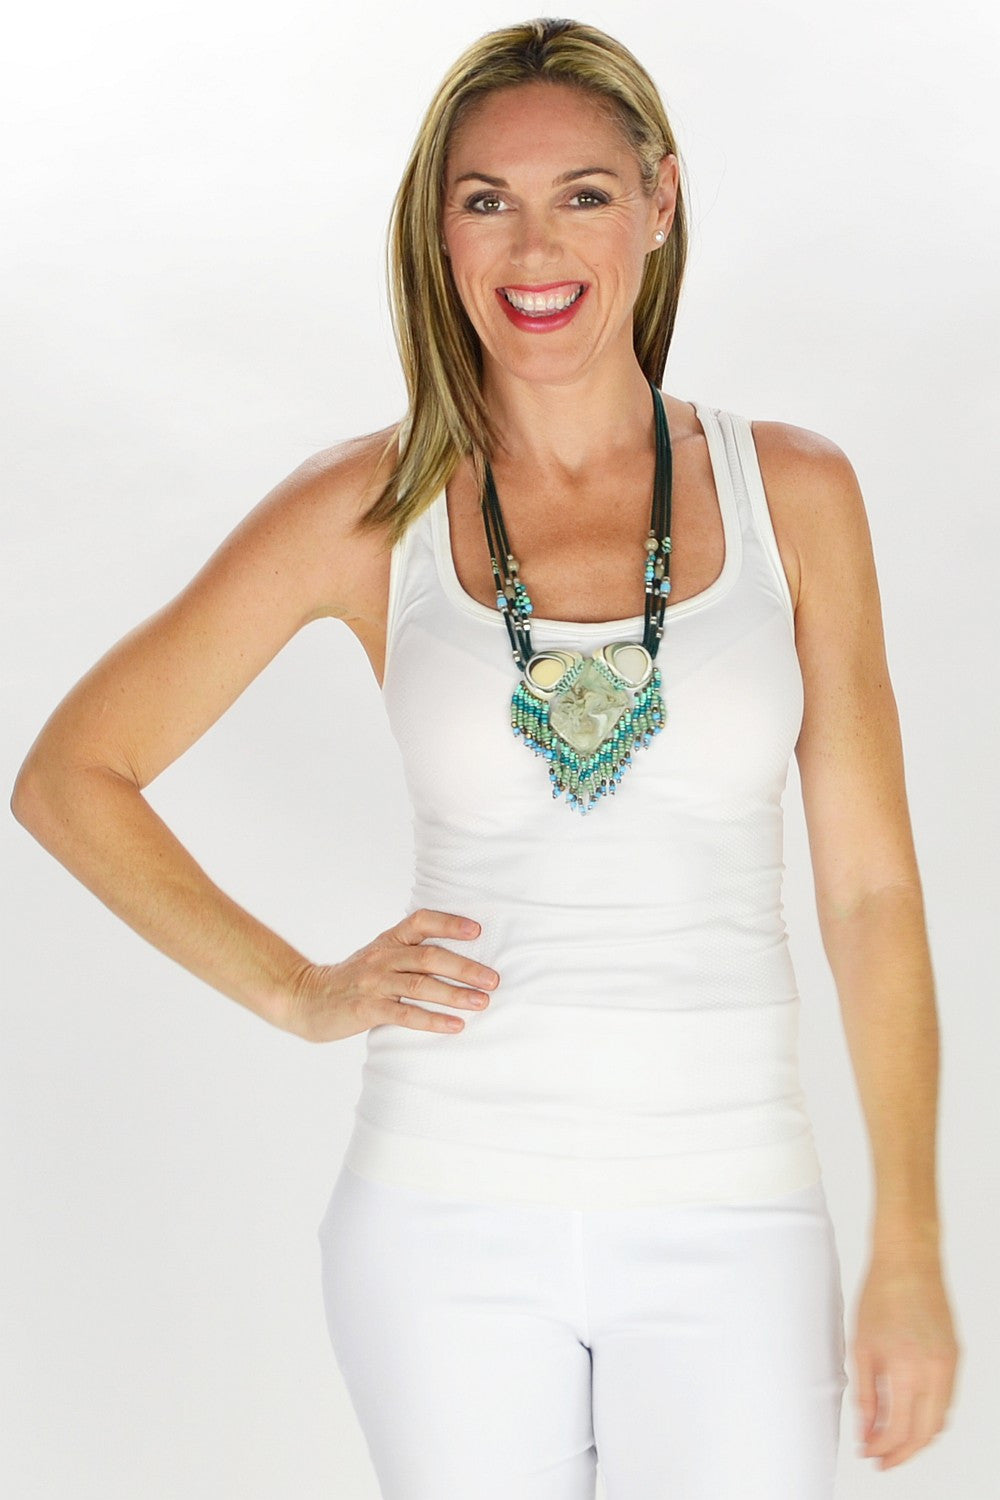 Aqua Beads Pendant Necklace | I Love Tunics | Tunic Tops | Tunic | Tunic Dresses  | womens clothing online